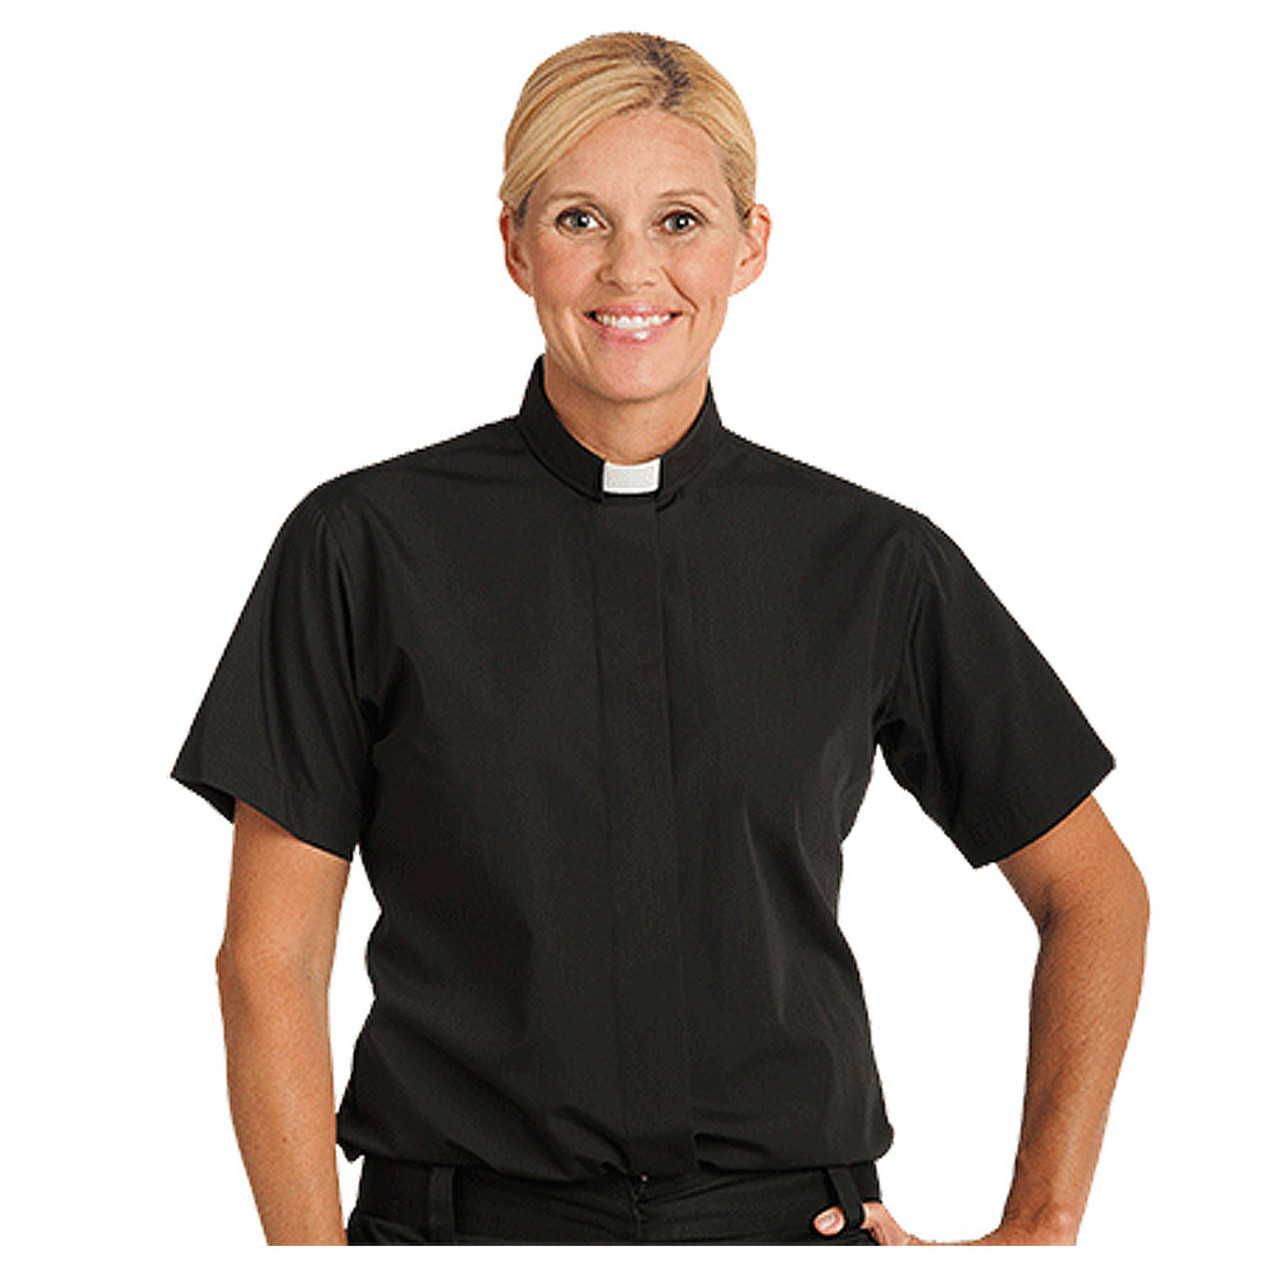 Women's Short Sleeve Tab Shirt in Black